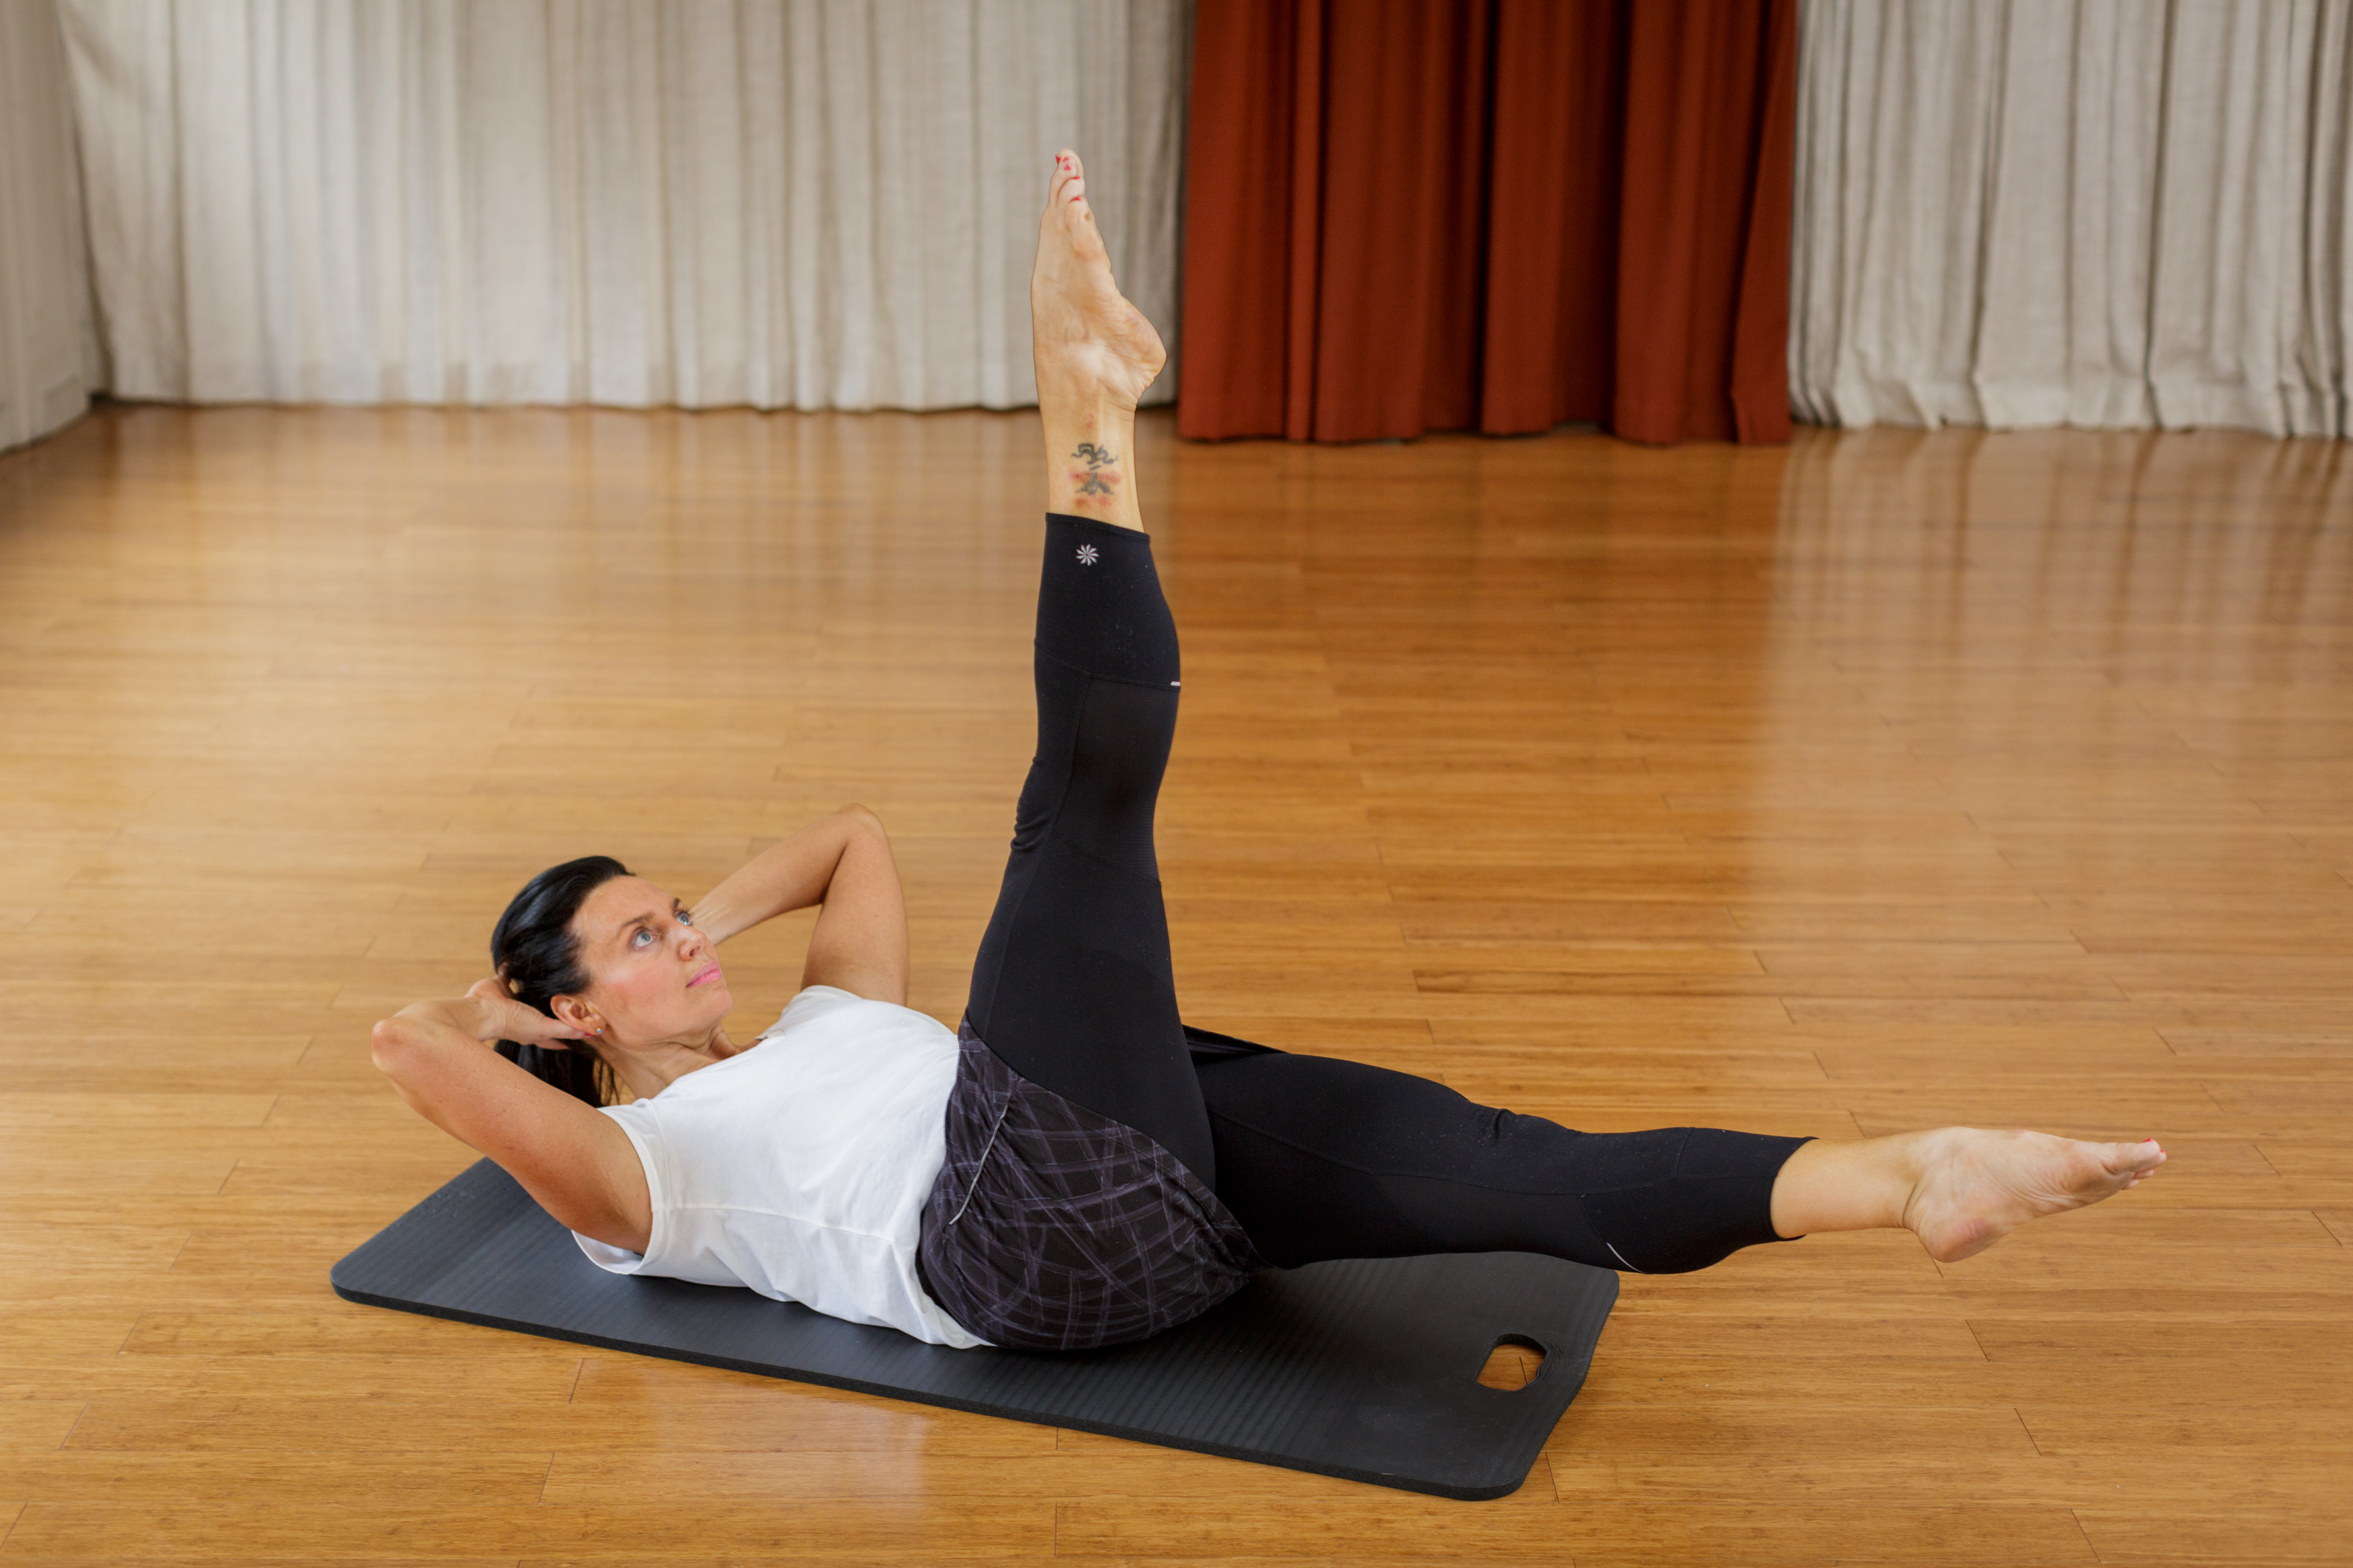 dating a pilates instructor As of aug 2018, the average pay for a pilates instructor is $2983 /hr or $33,625 annually.